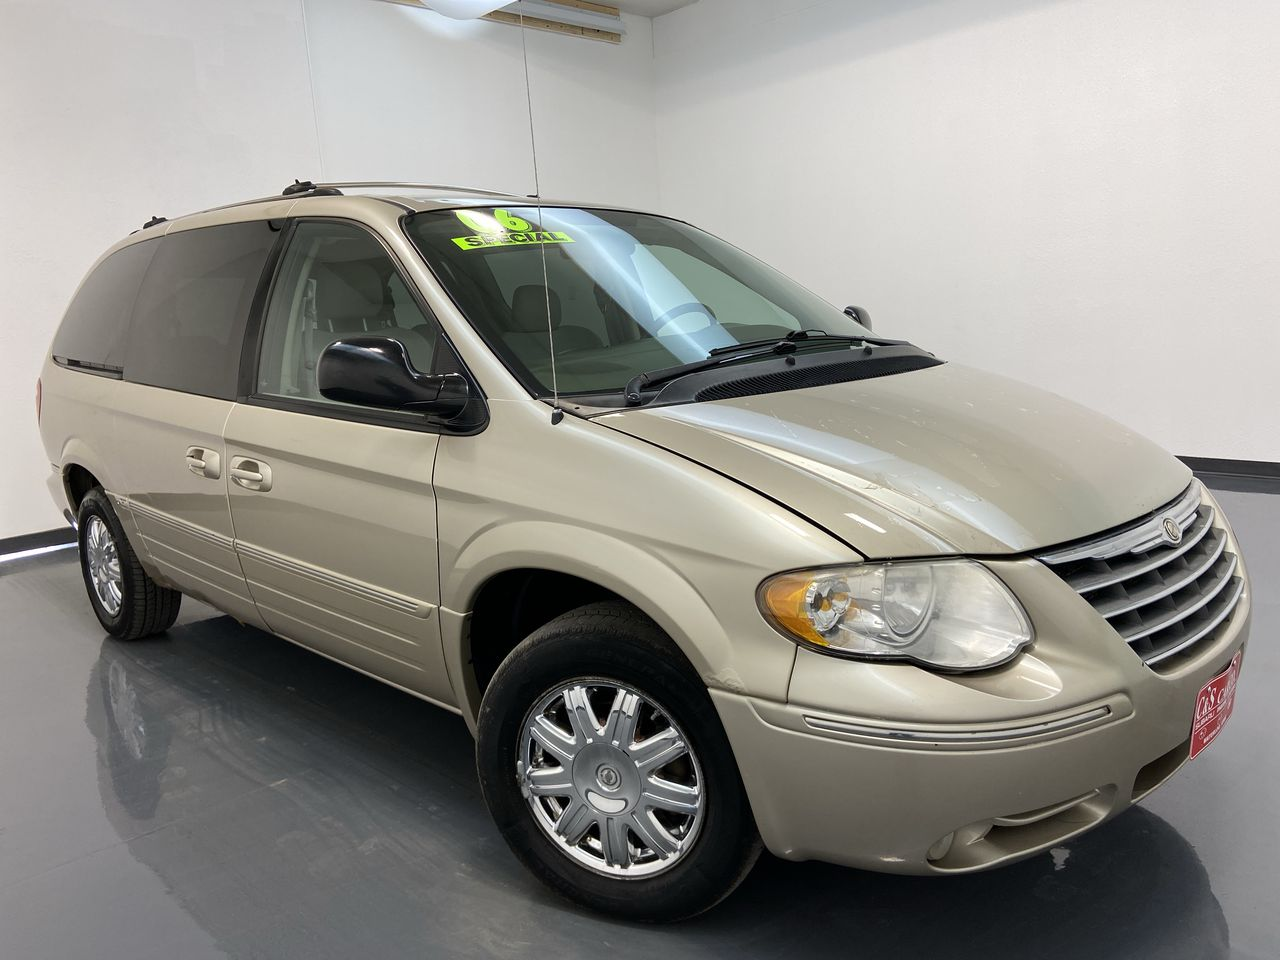 2006 Chrysler Town & Country Wagon LWB  - 16362A  - C & S Car Company